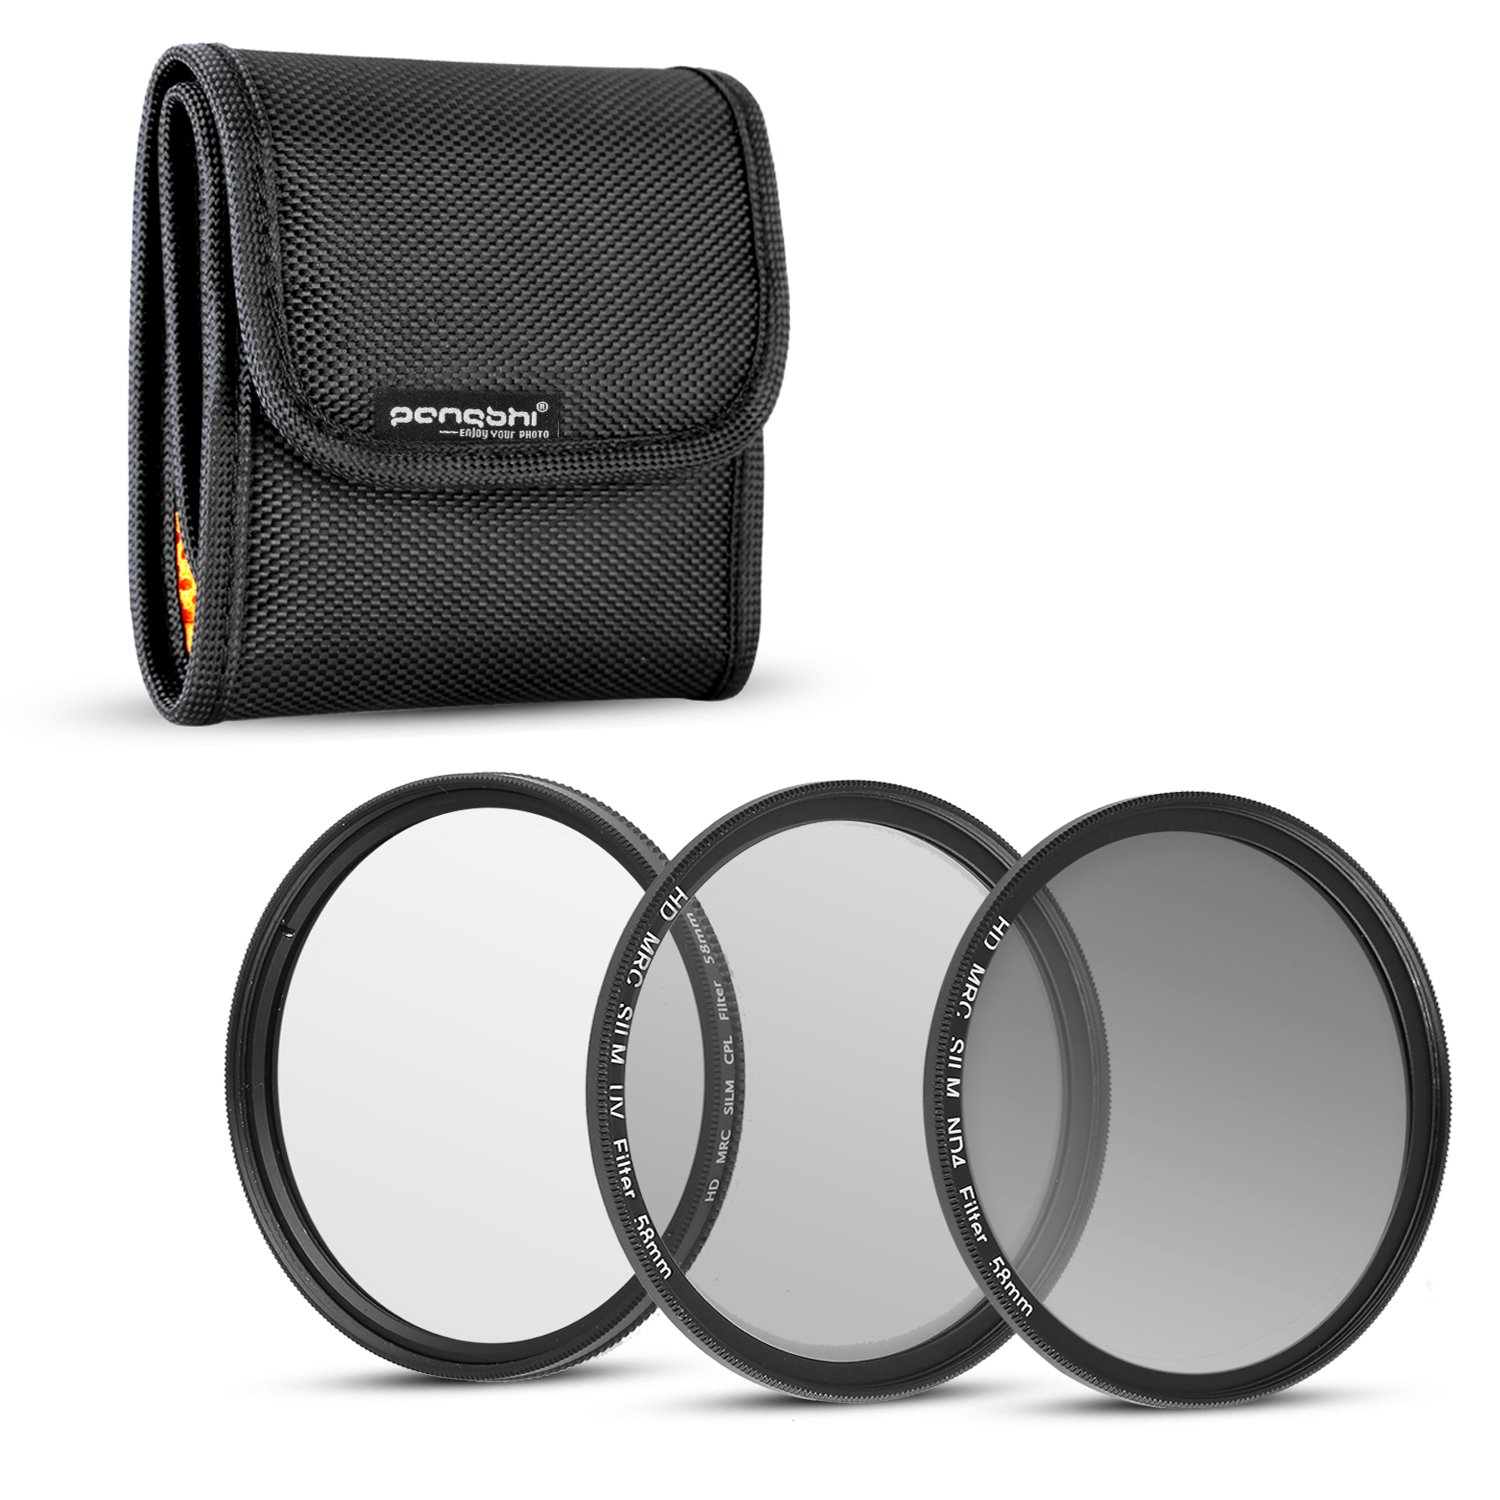 pangshi 58MM UV CPL Polarizer Neutral Density ND4 Lens Filter Professional Photography Filters Kit with Carry Pouch for DSLR Camera Lenses with 58mm Filter Thread by pangshi